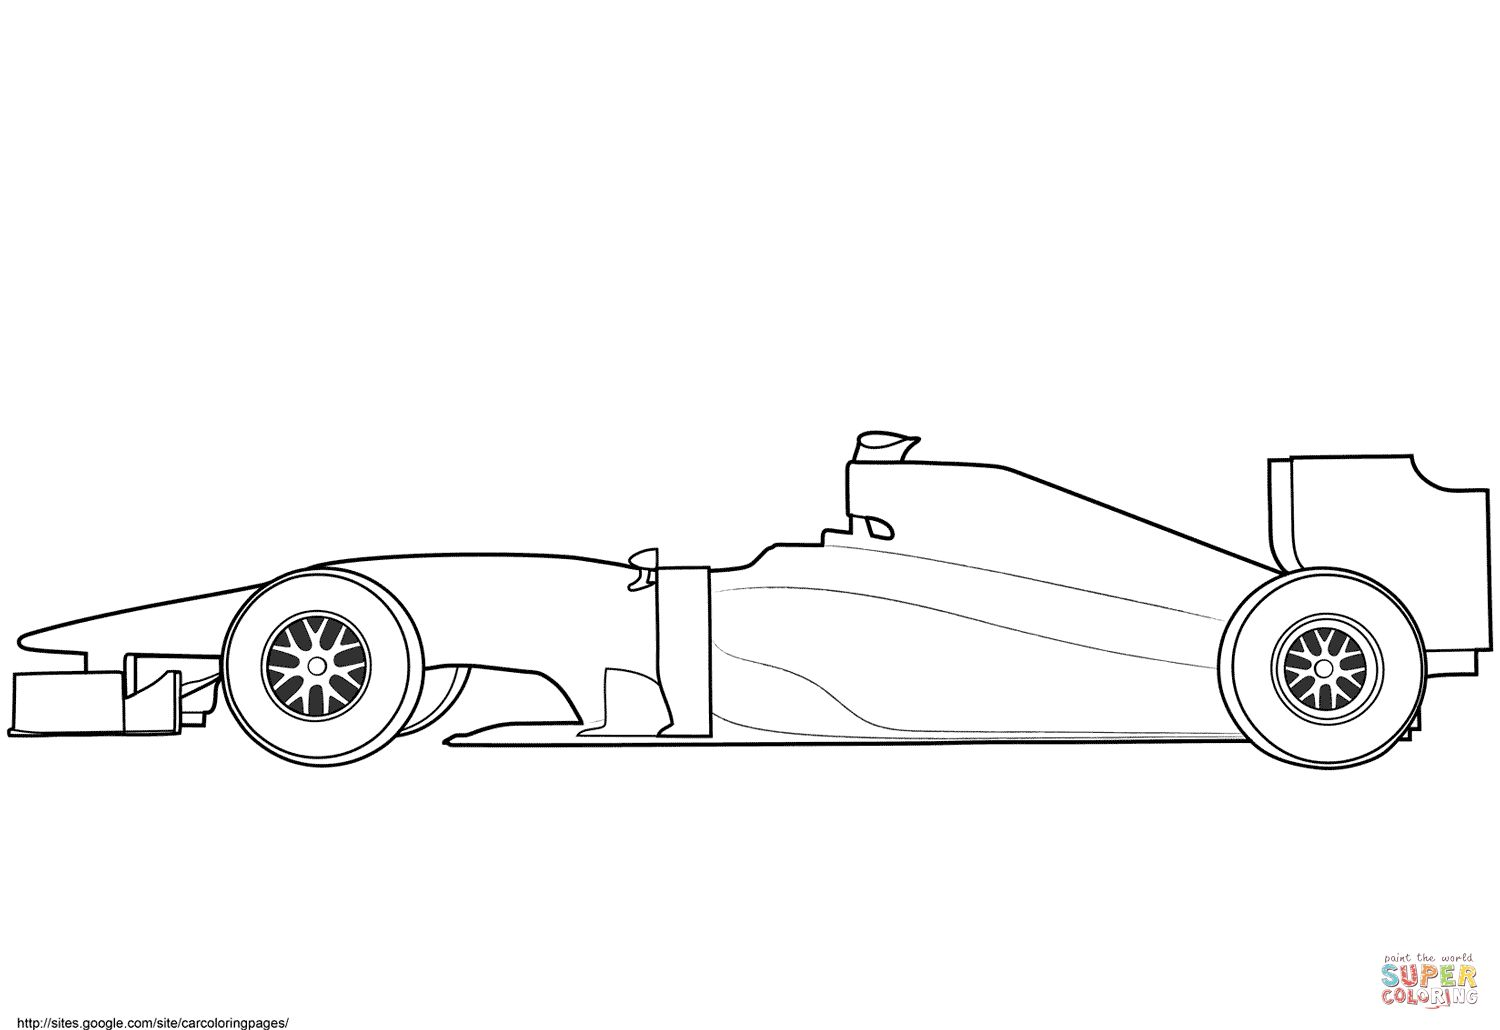 Blank Formula 1 Race Car Coloring Page In 2020 Race Car Coloring